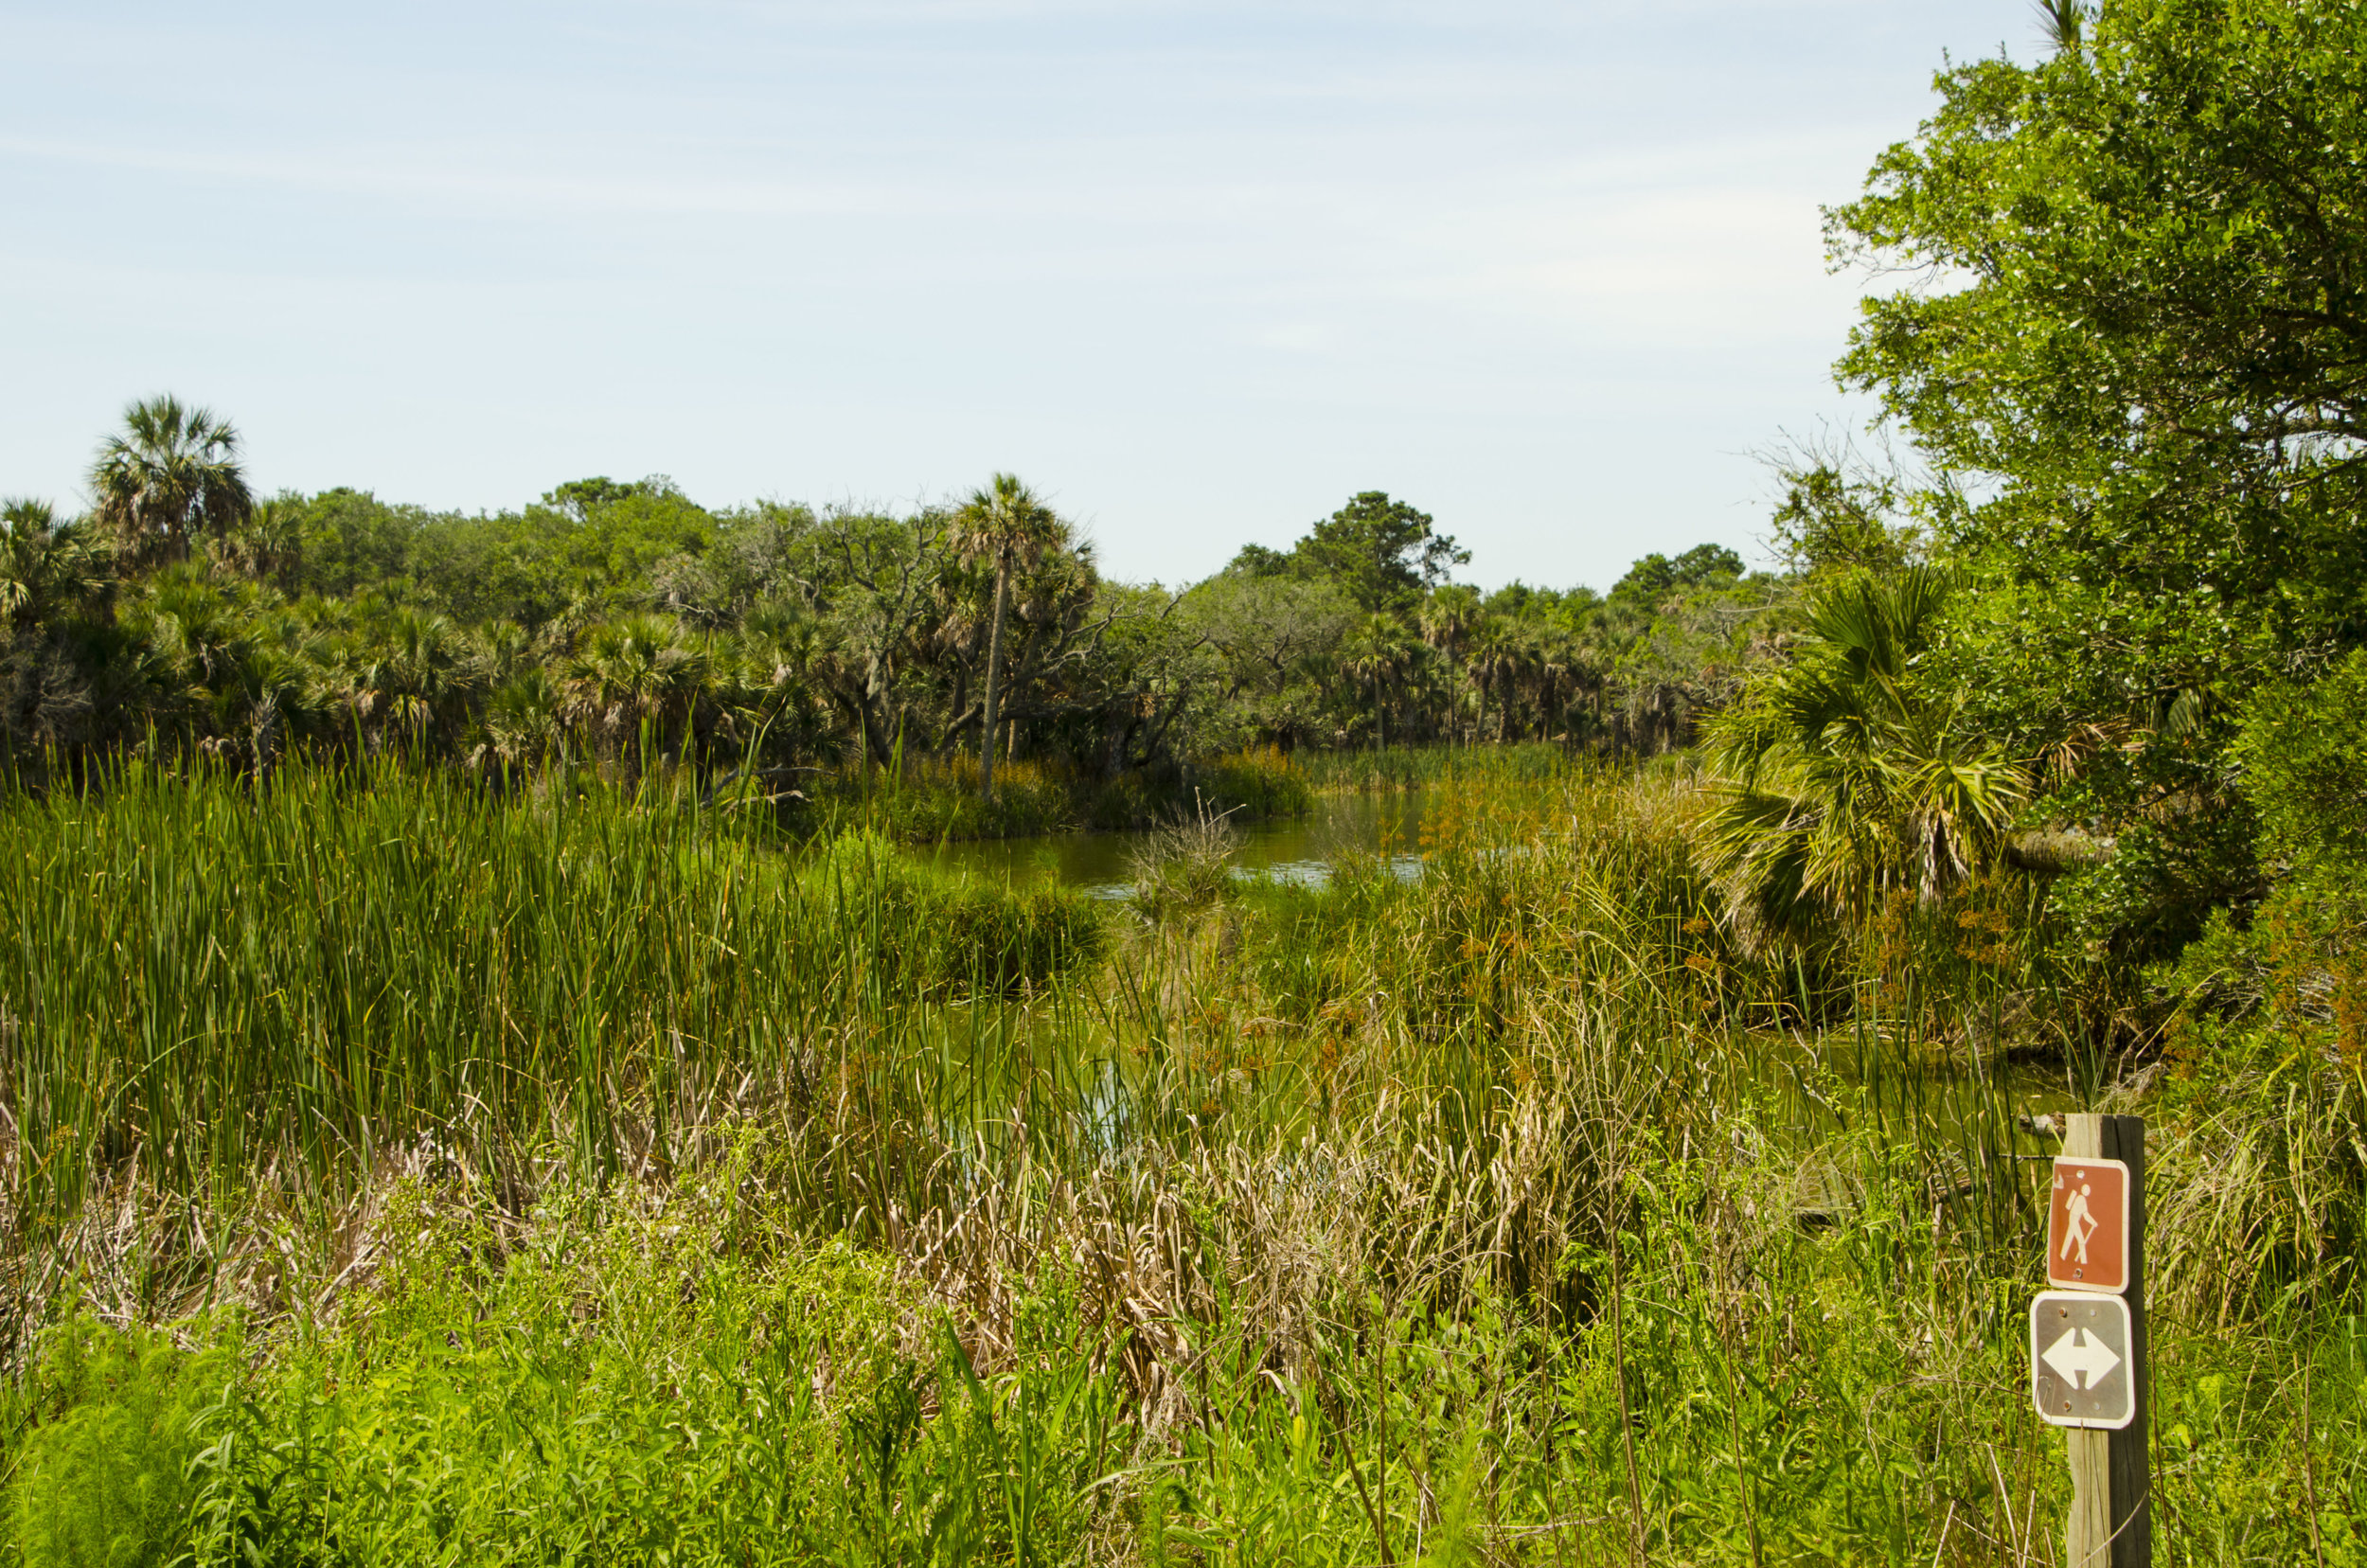 """Take a left here to see alligators along the """"Turkey Walk"""" trail."""